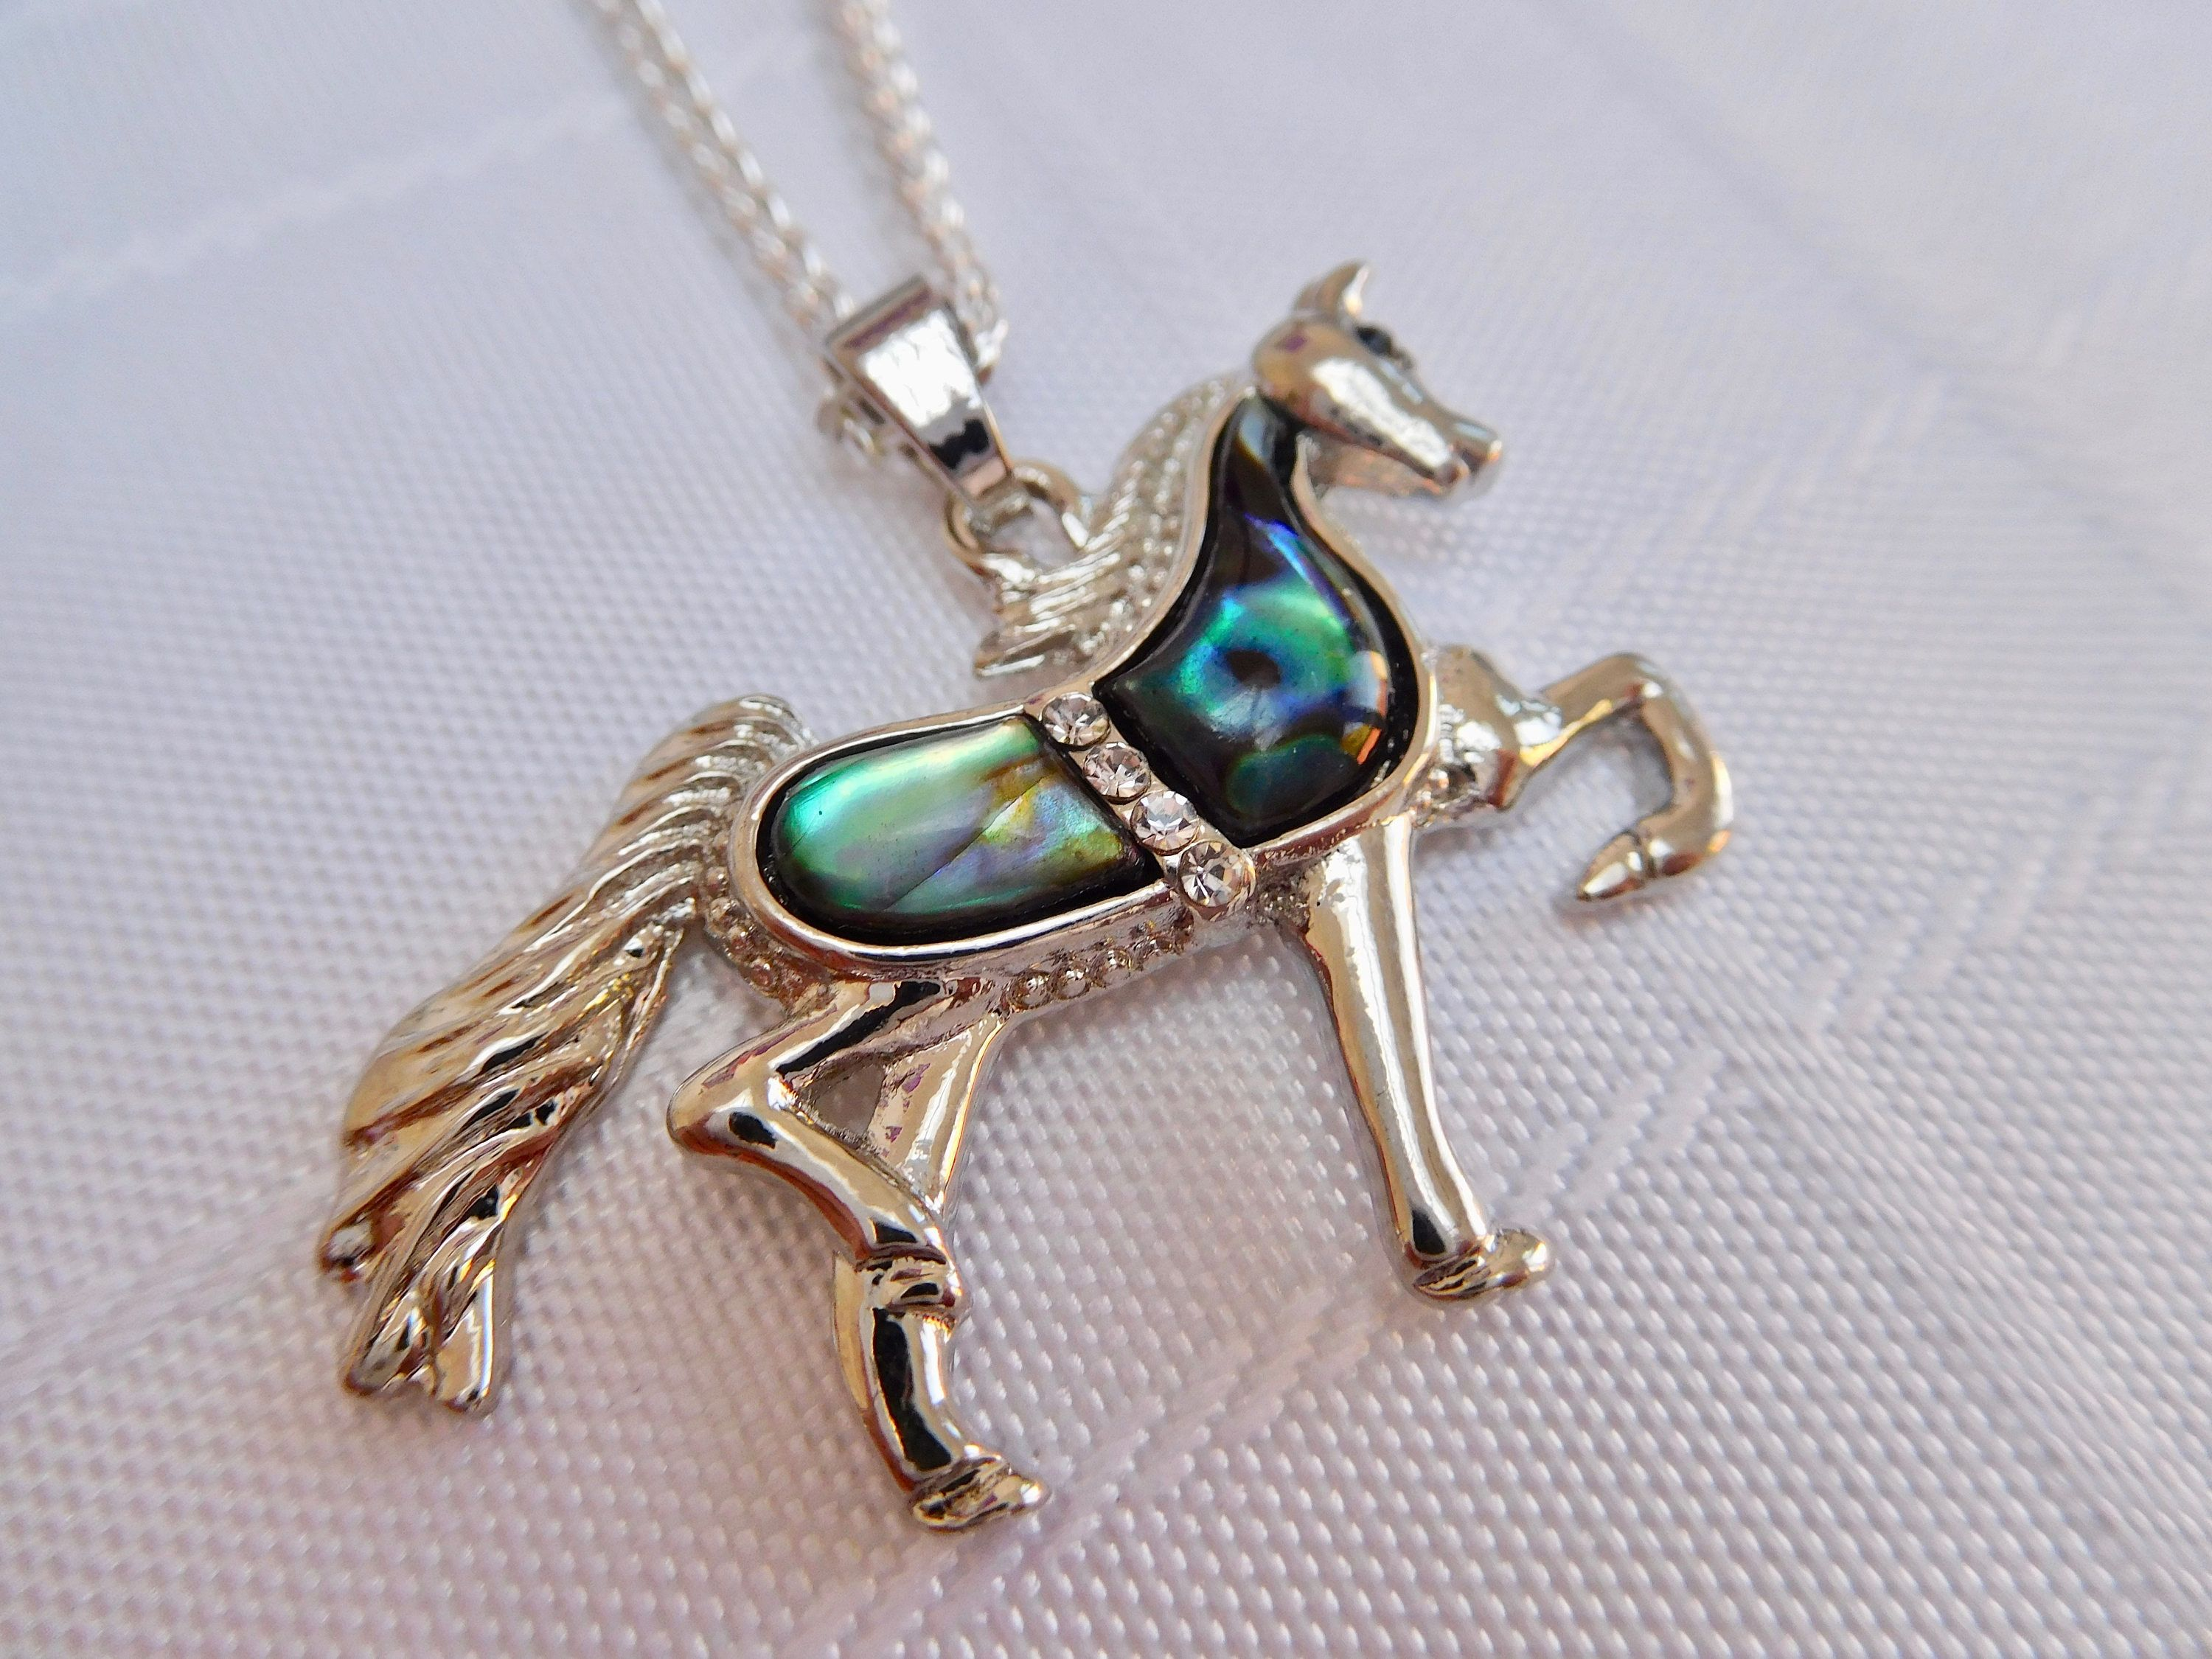 pendant product img crafty necklace celts horse